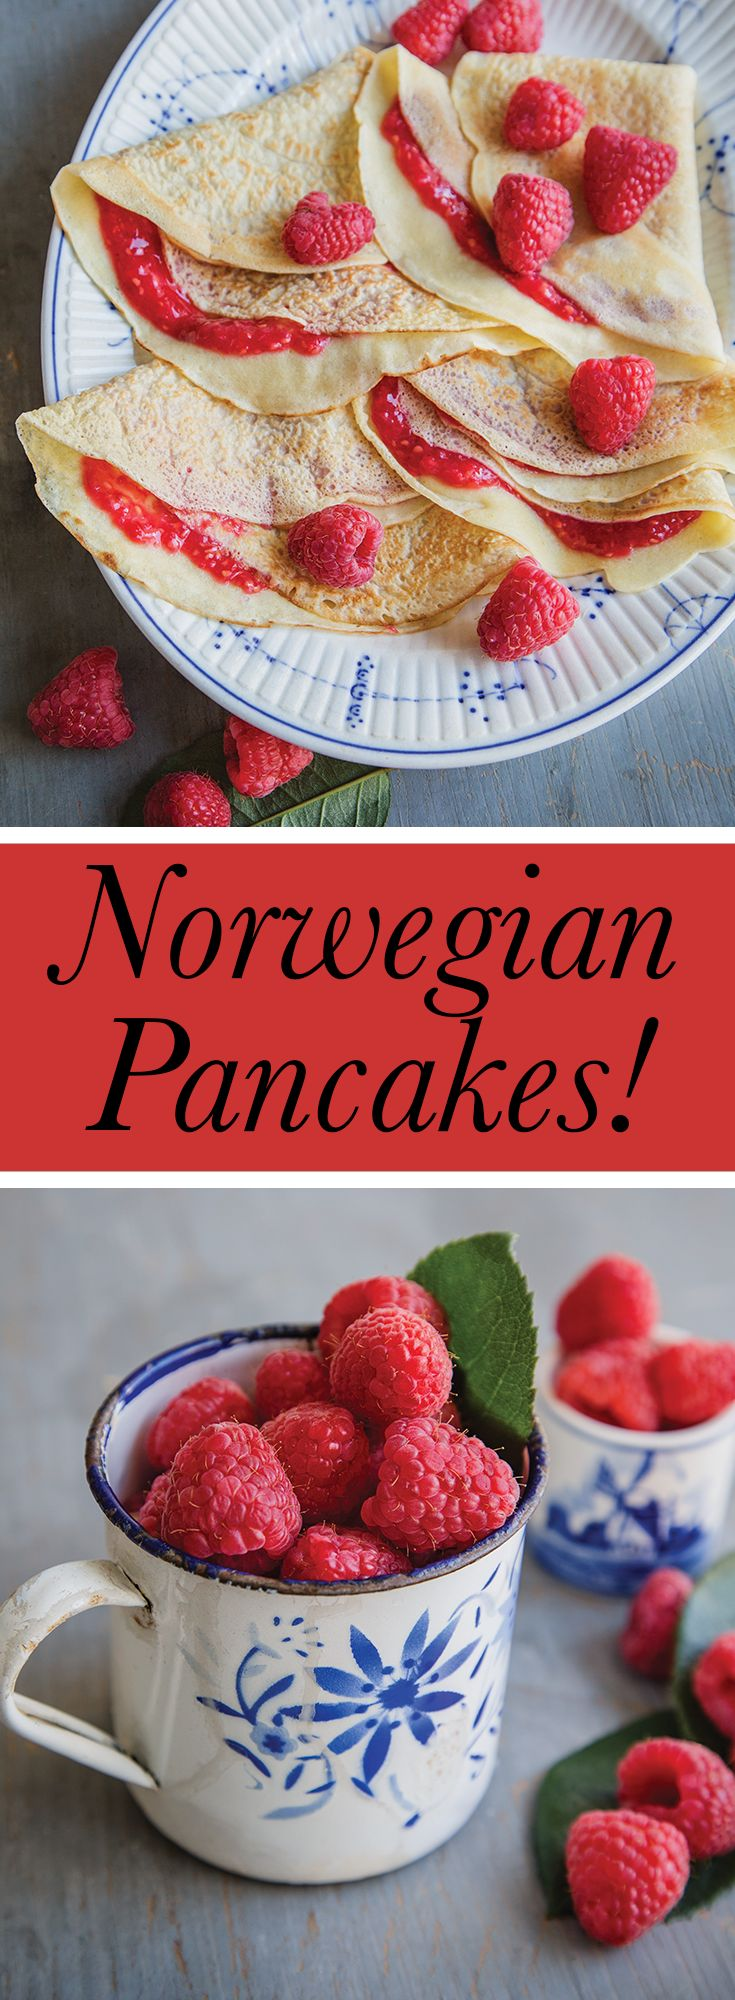 85 best norway images on pinterest sweet paul desserts and